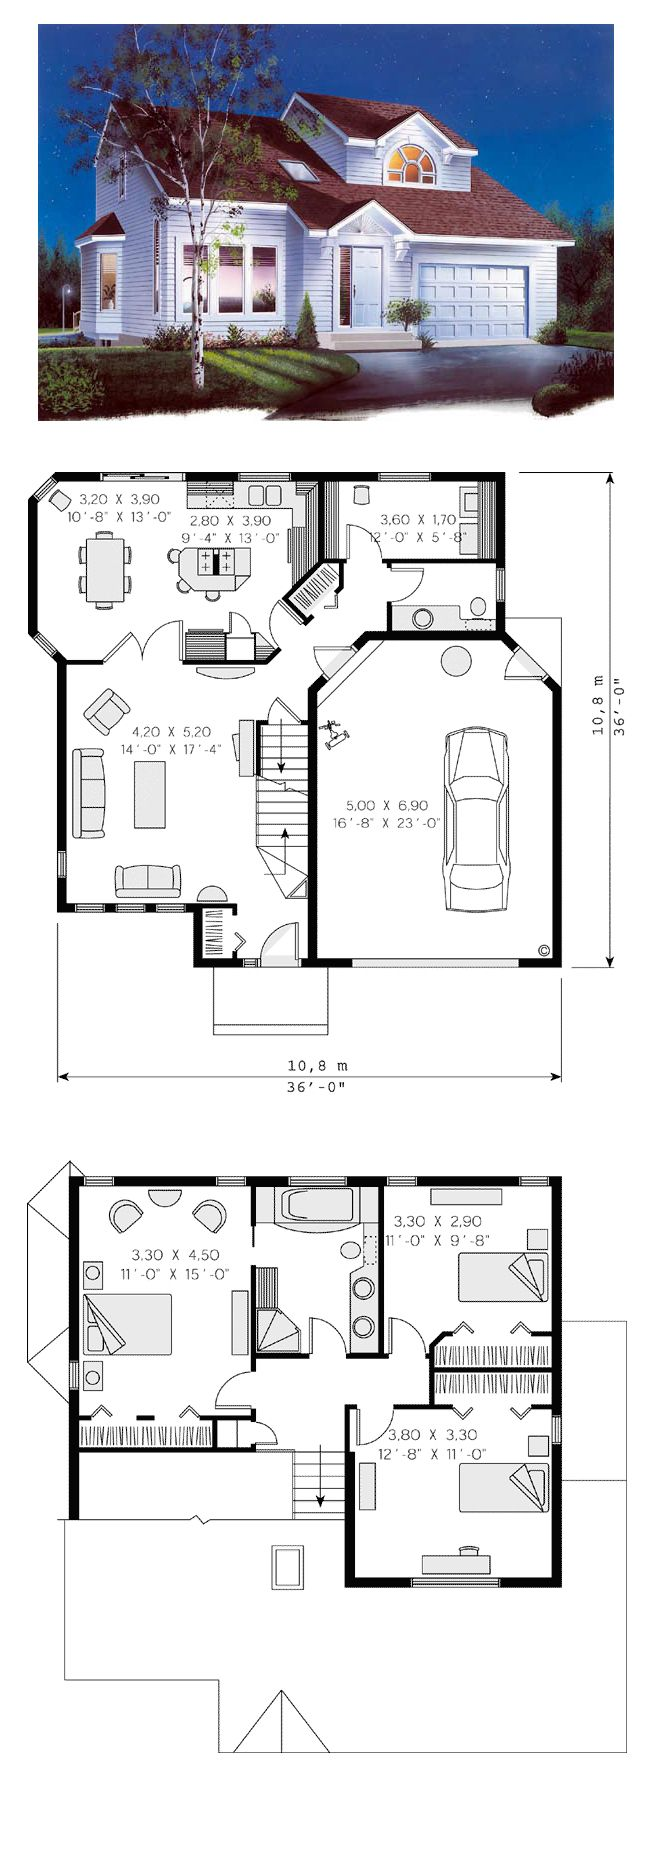 45 best saltbox house plans images on pinterest saltbox Saltbox cabin plans